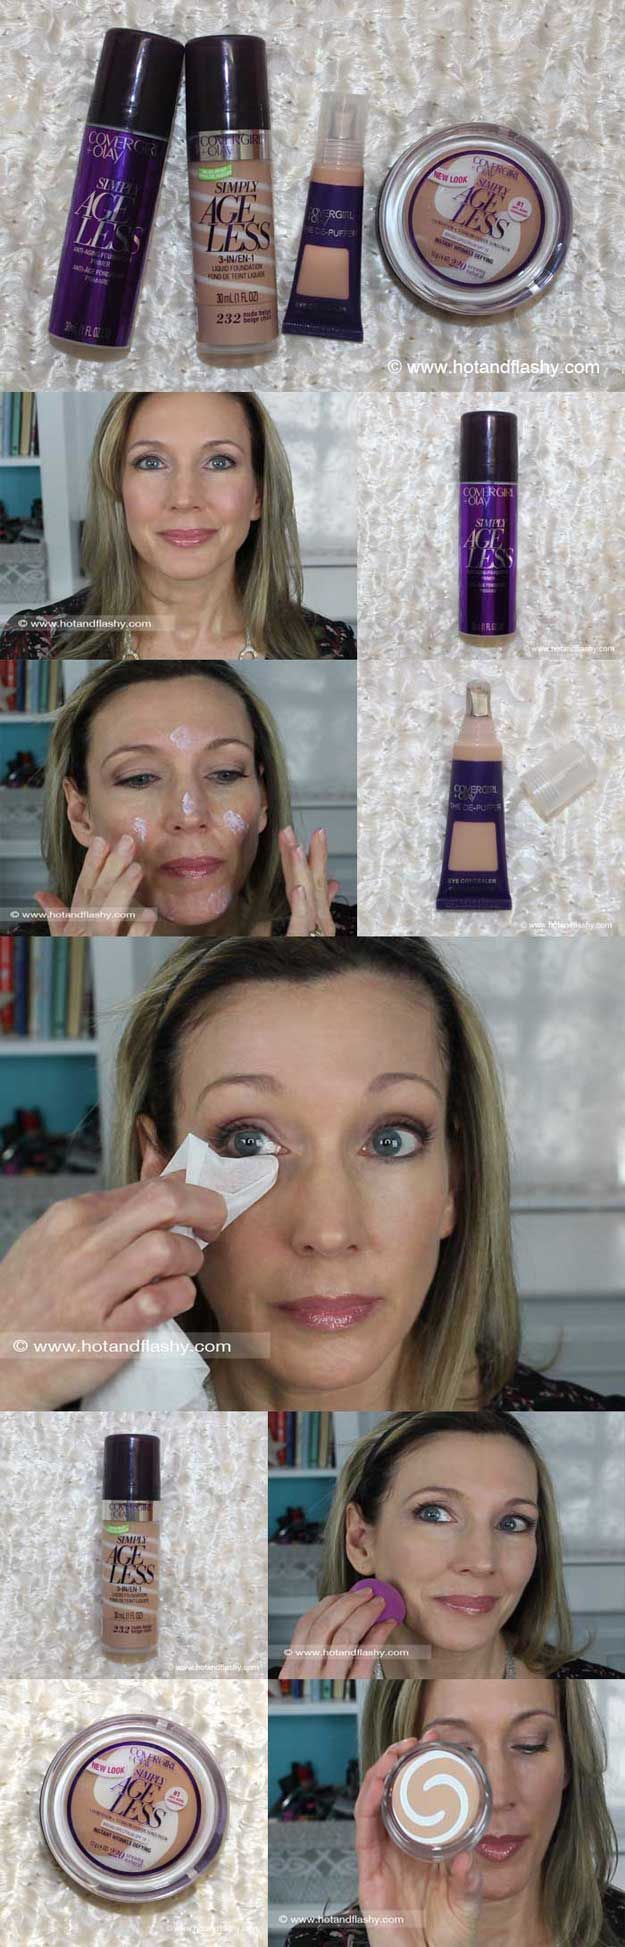 Beauty Hacks  : Makeup Tips That Make Wrinkles Vanish - Spring Makeup Tips with CoverGirl + Olay... #Hacks https://inwomens.com/2018/02/03/beauty-hacks-makeup-tips-that-make-wrinkles-vanish-spring-makeup-tips-with-covergirl-olay/